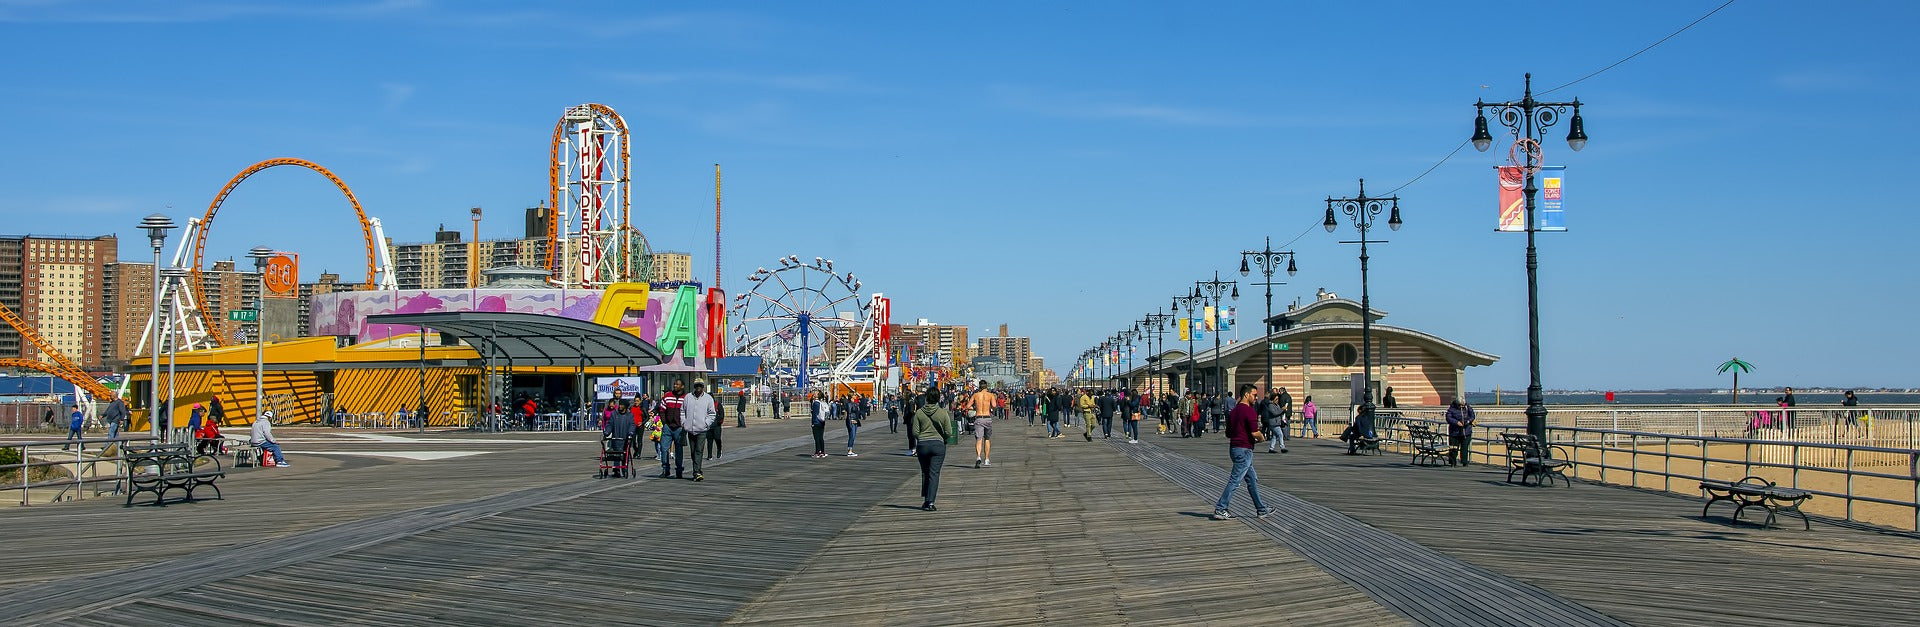 panoramica di Coney Island